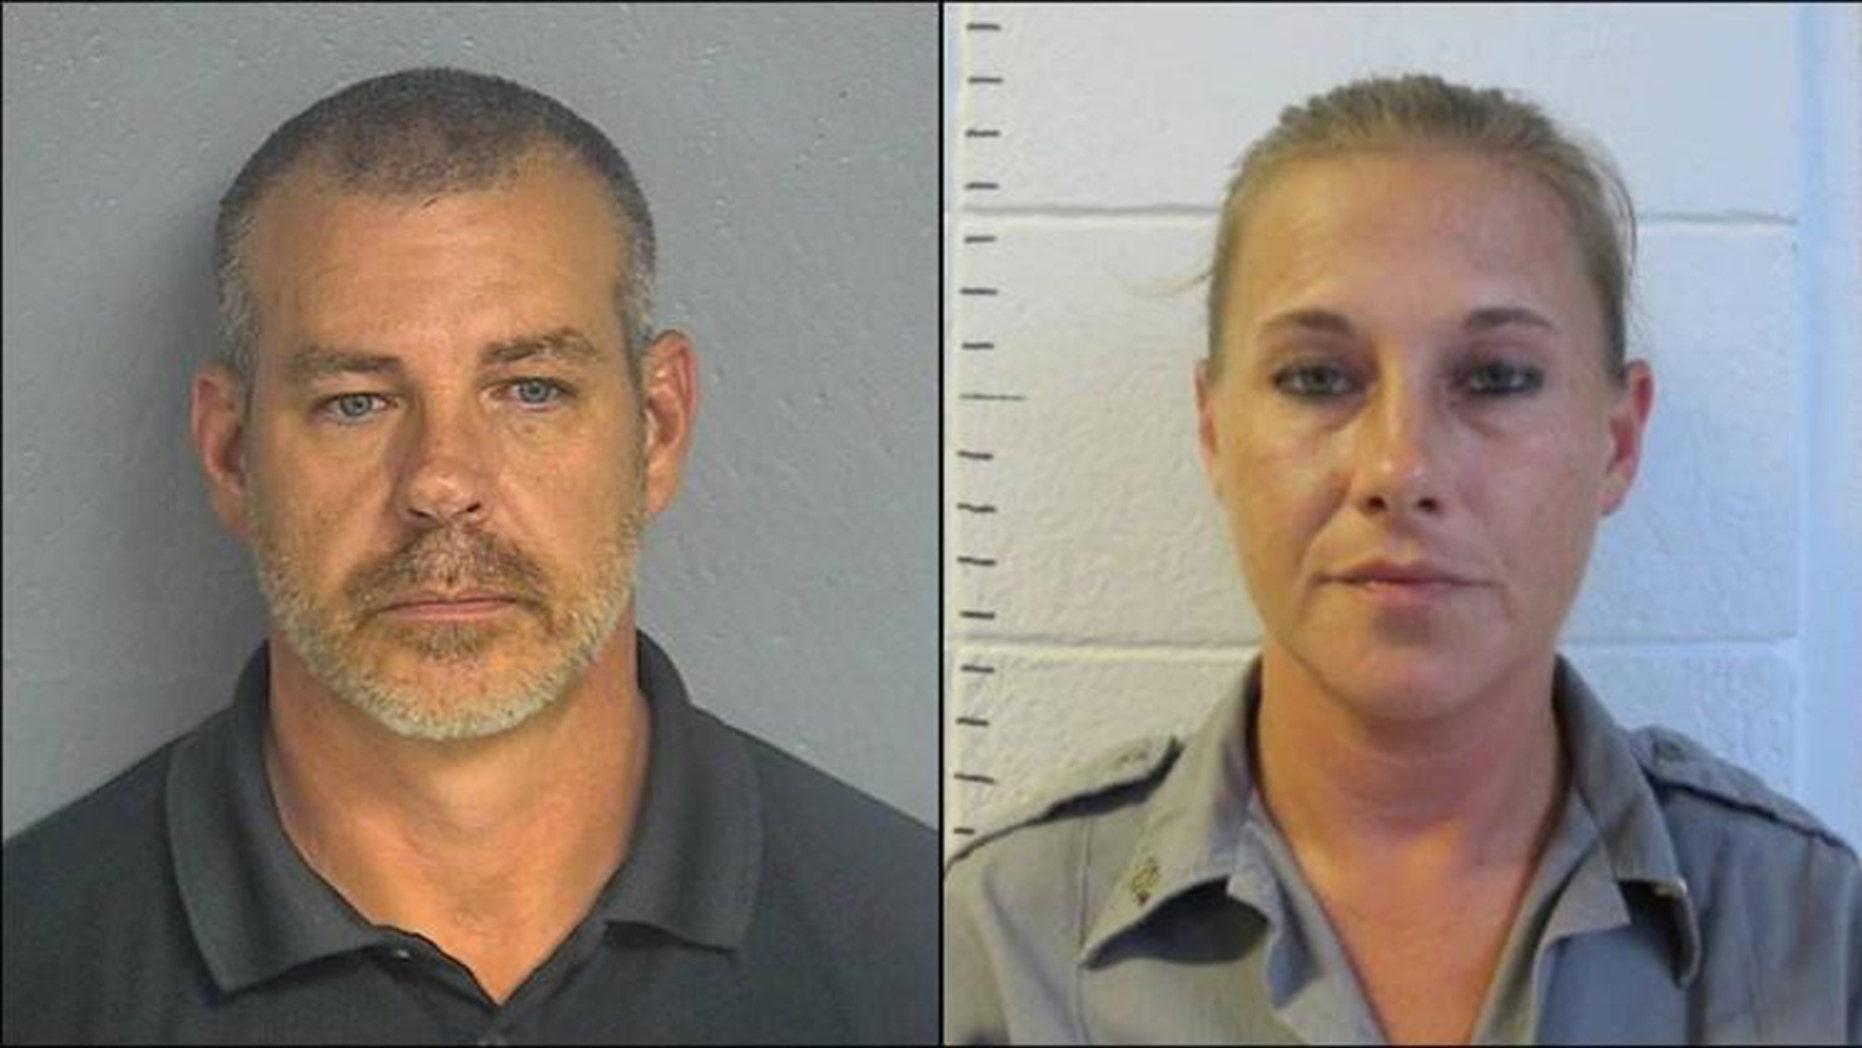 Former Texas County Sheriff James Sigman, 48, and Lt. Deputy Jennifer Tomaszewski, 38, were indicted on multiple felonies.